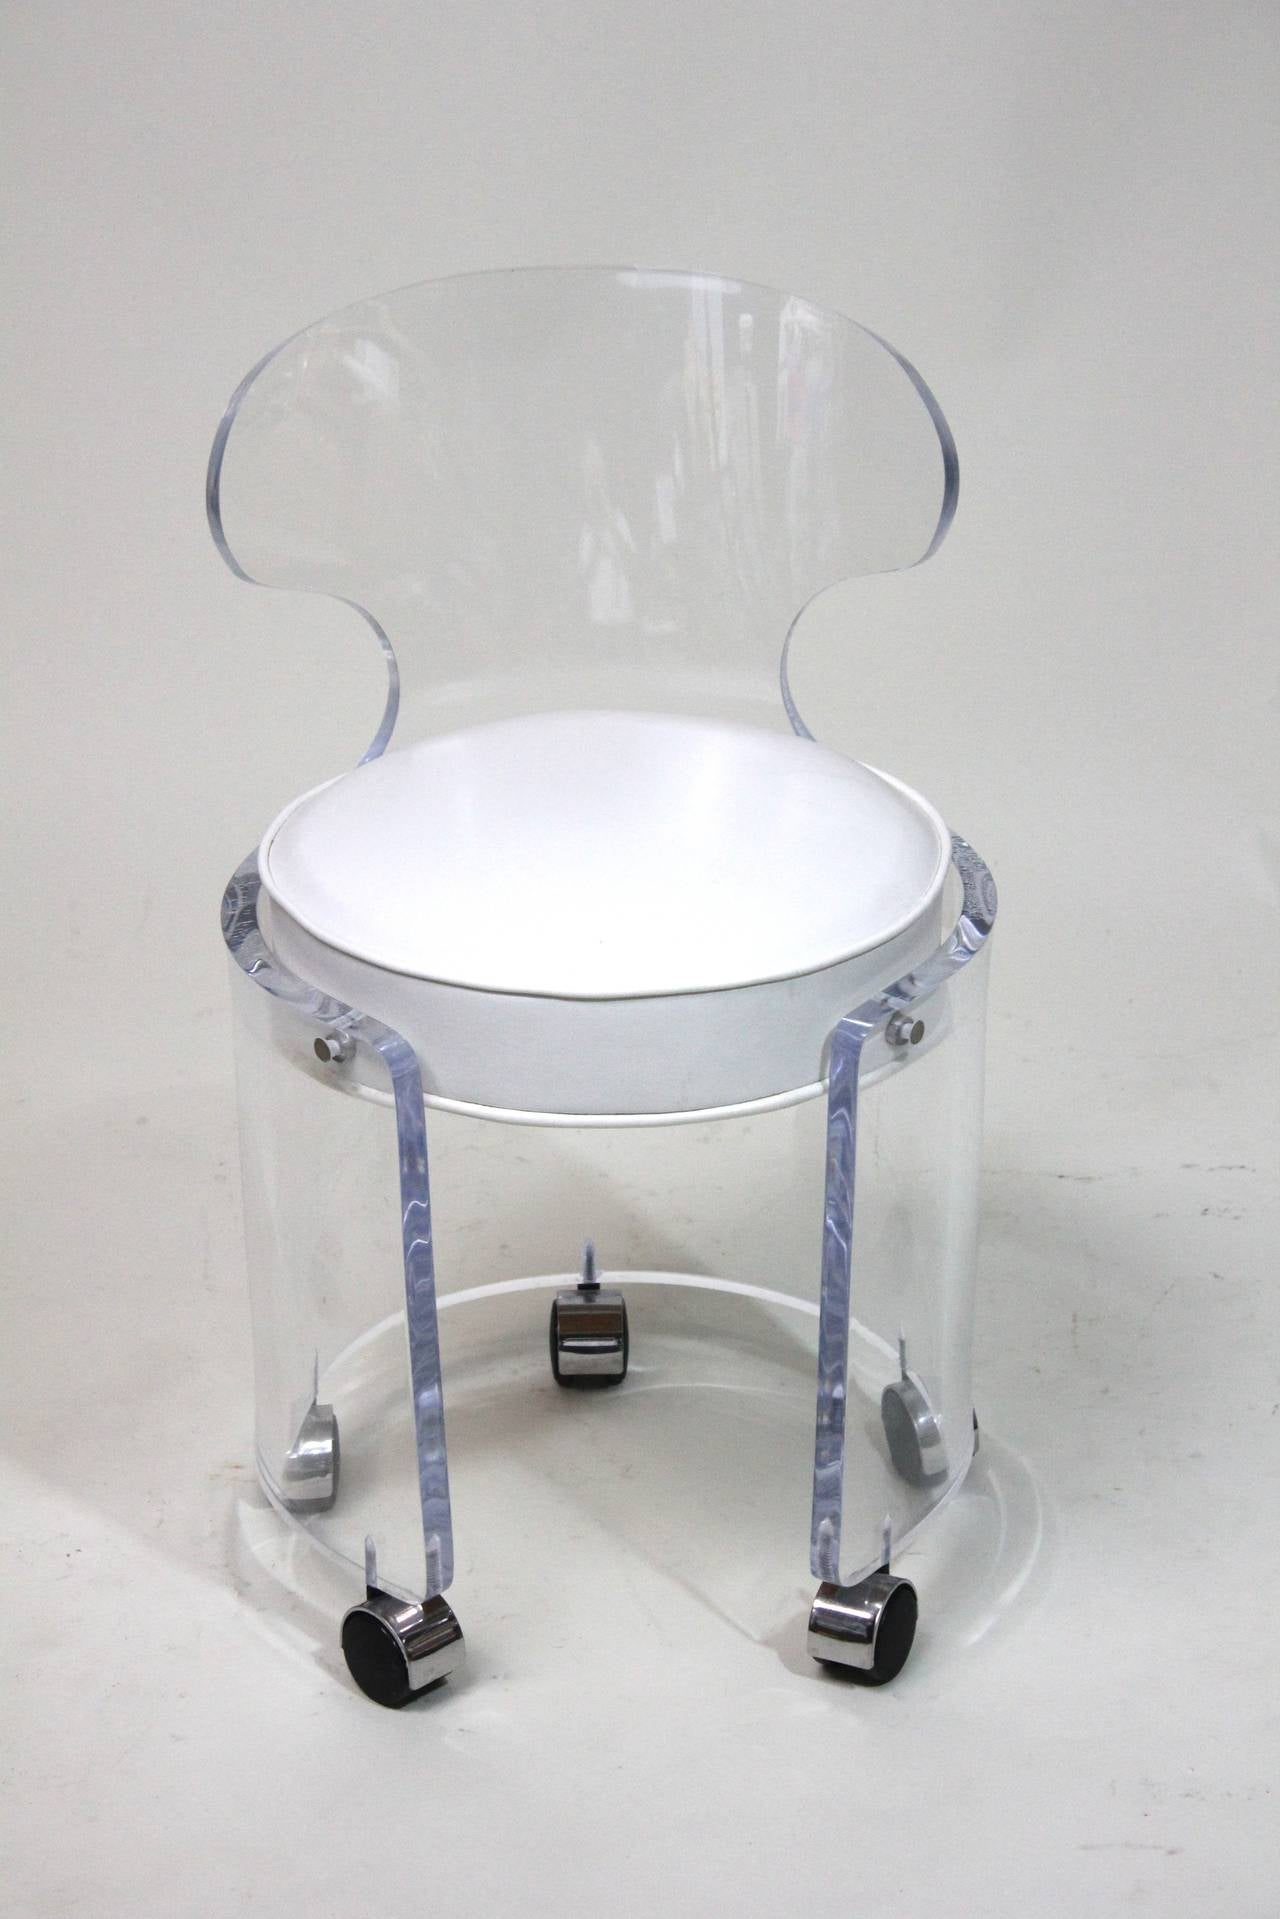 Comfortable Vanity Chair 1970 Lucite Vanity Chair Glam In White Leather Charles